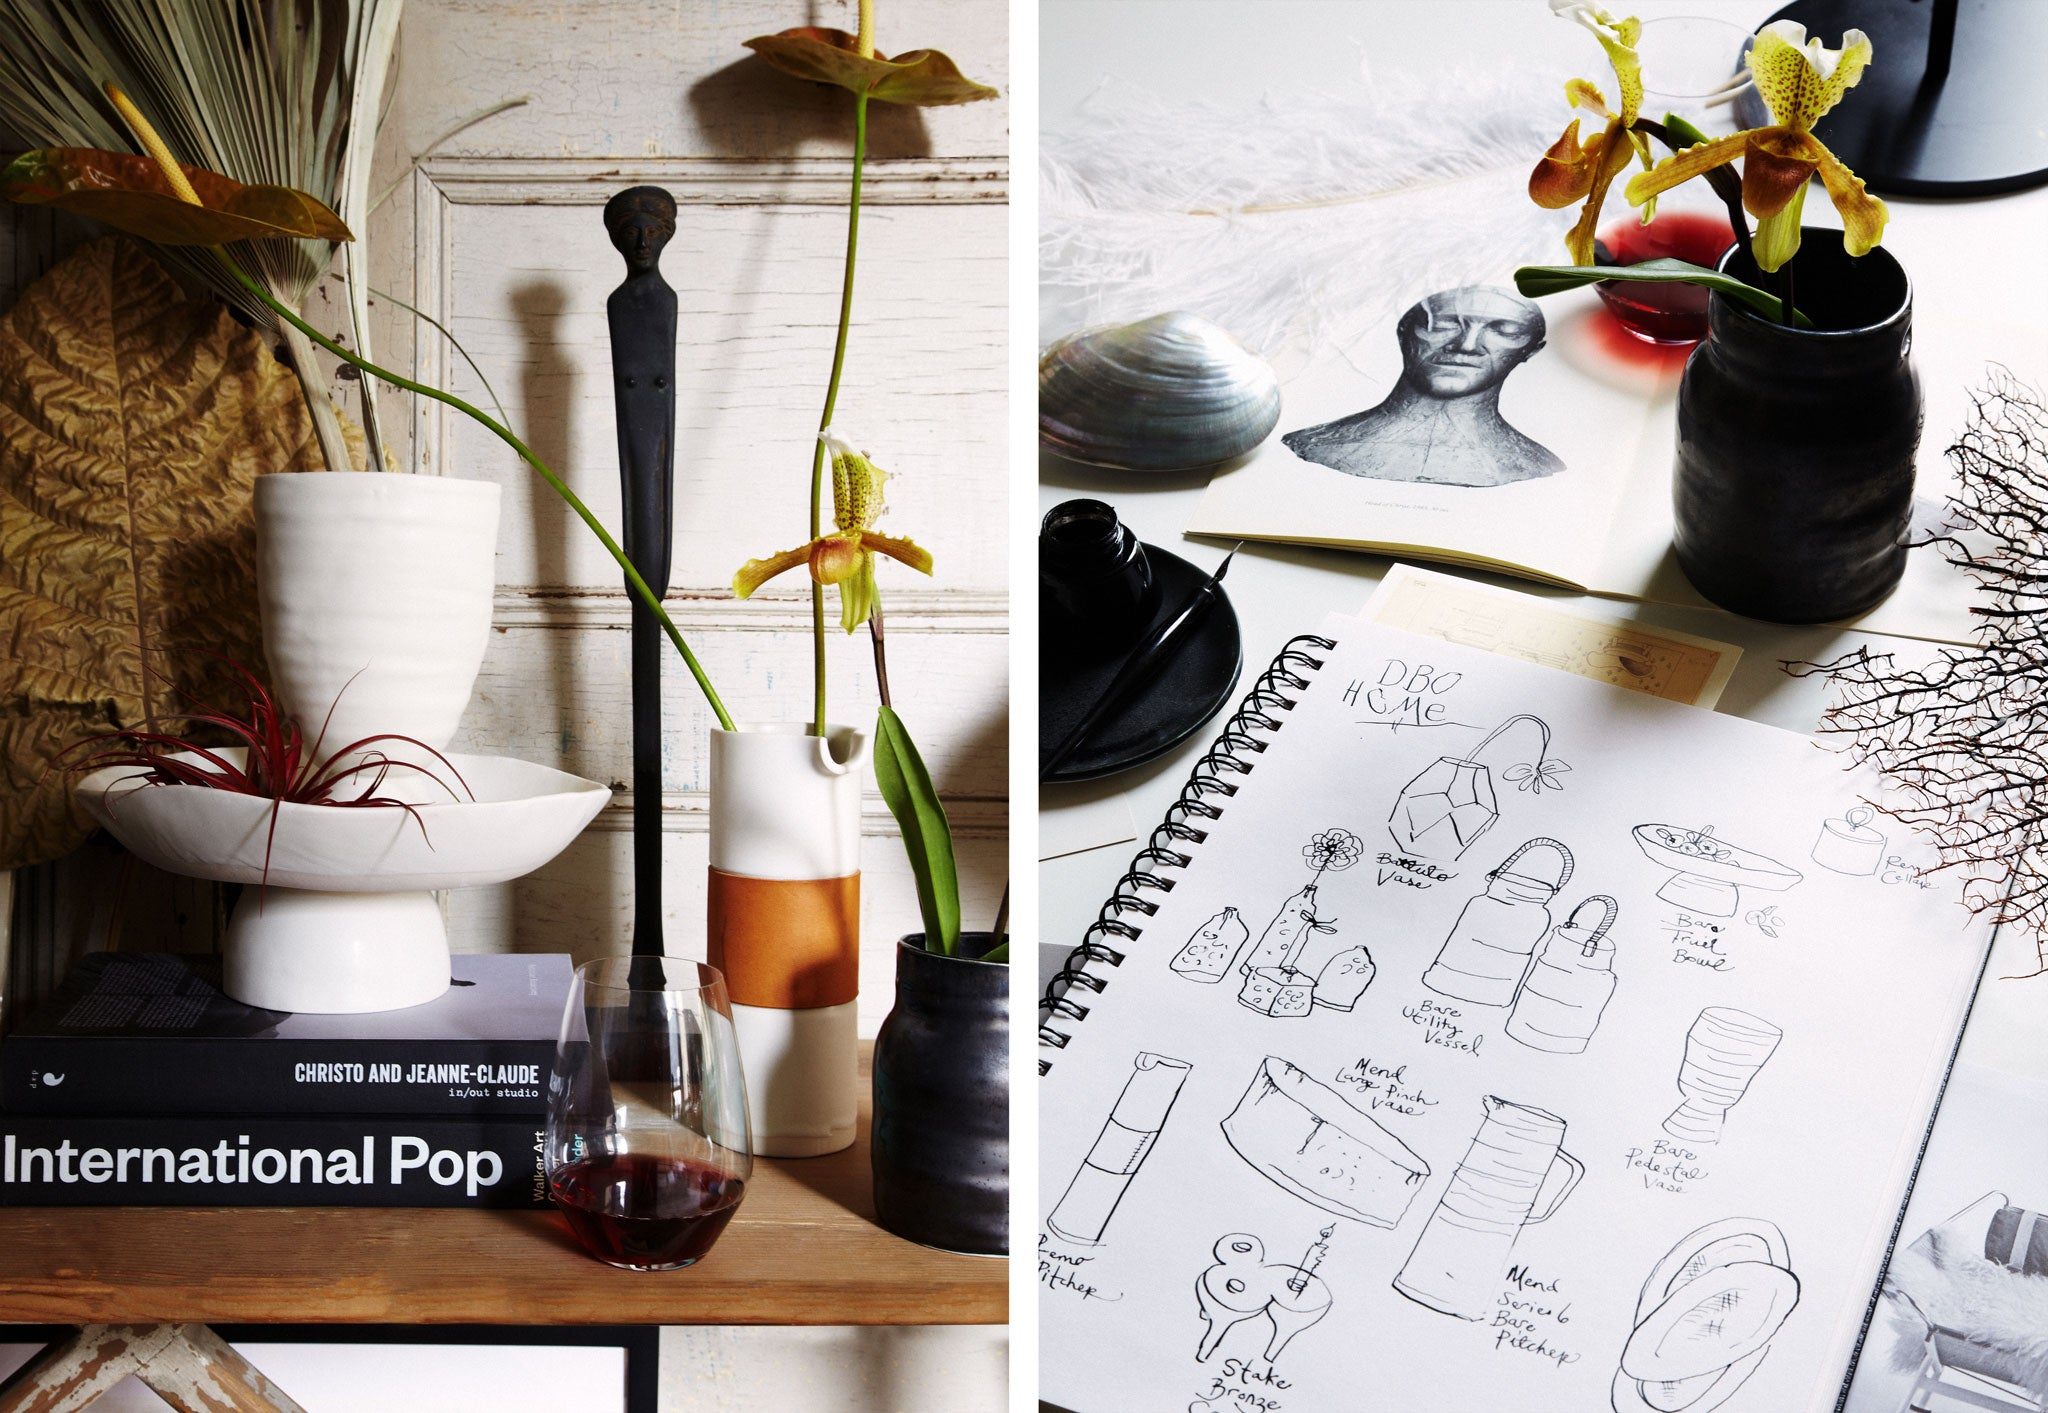 DBO HOME artisan ceramic vases styled by Marcus Hay with a notebook of drawings and sketches of DBO HOME pieces